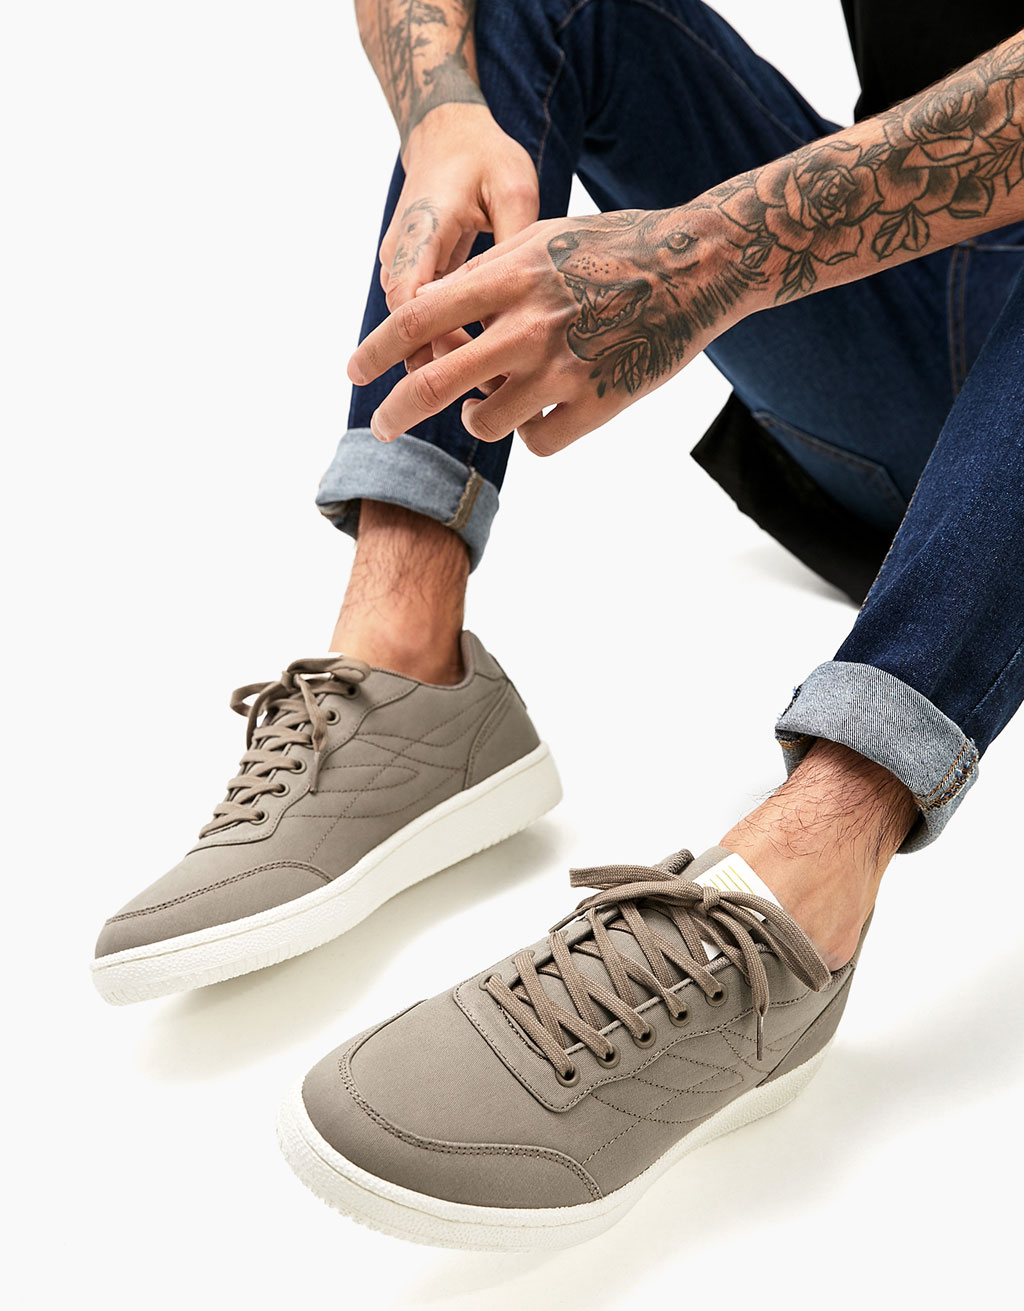 Men's lace-up fabric sports shoes with topstitching detail